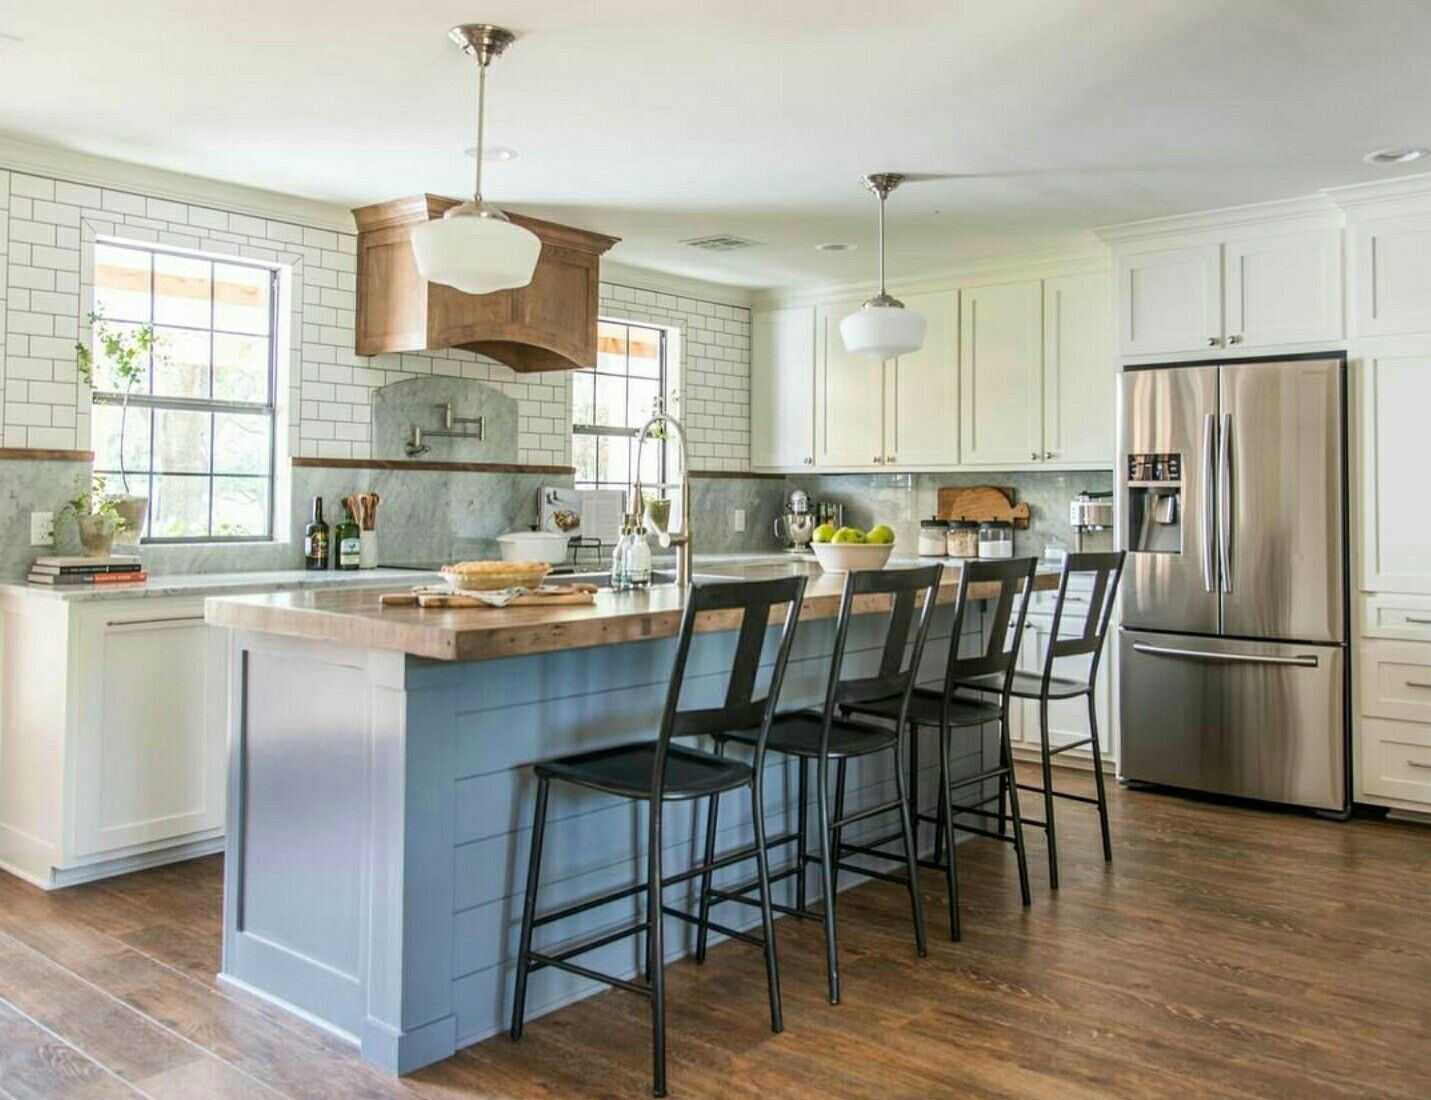 Pin by Lauren Willis on Kitchens! | Fixer upper kitchen ...